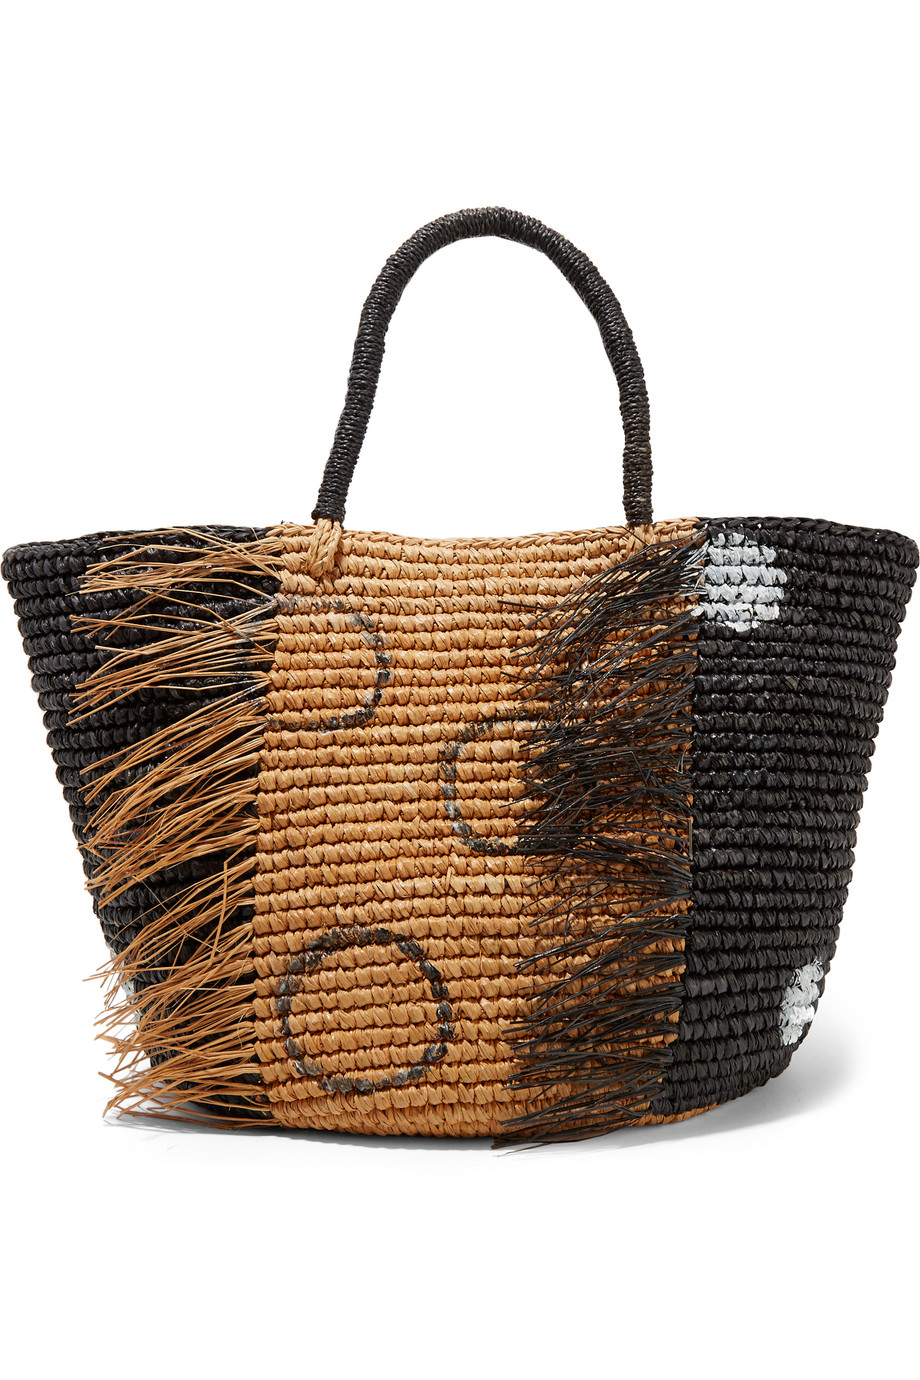 Sensi Studio Frayed Woven Toquilla Straw Tote, Black, Women's